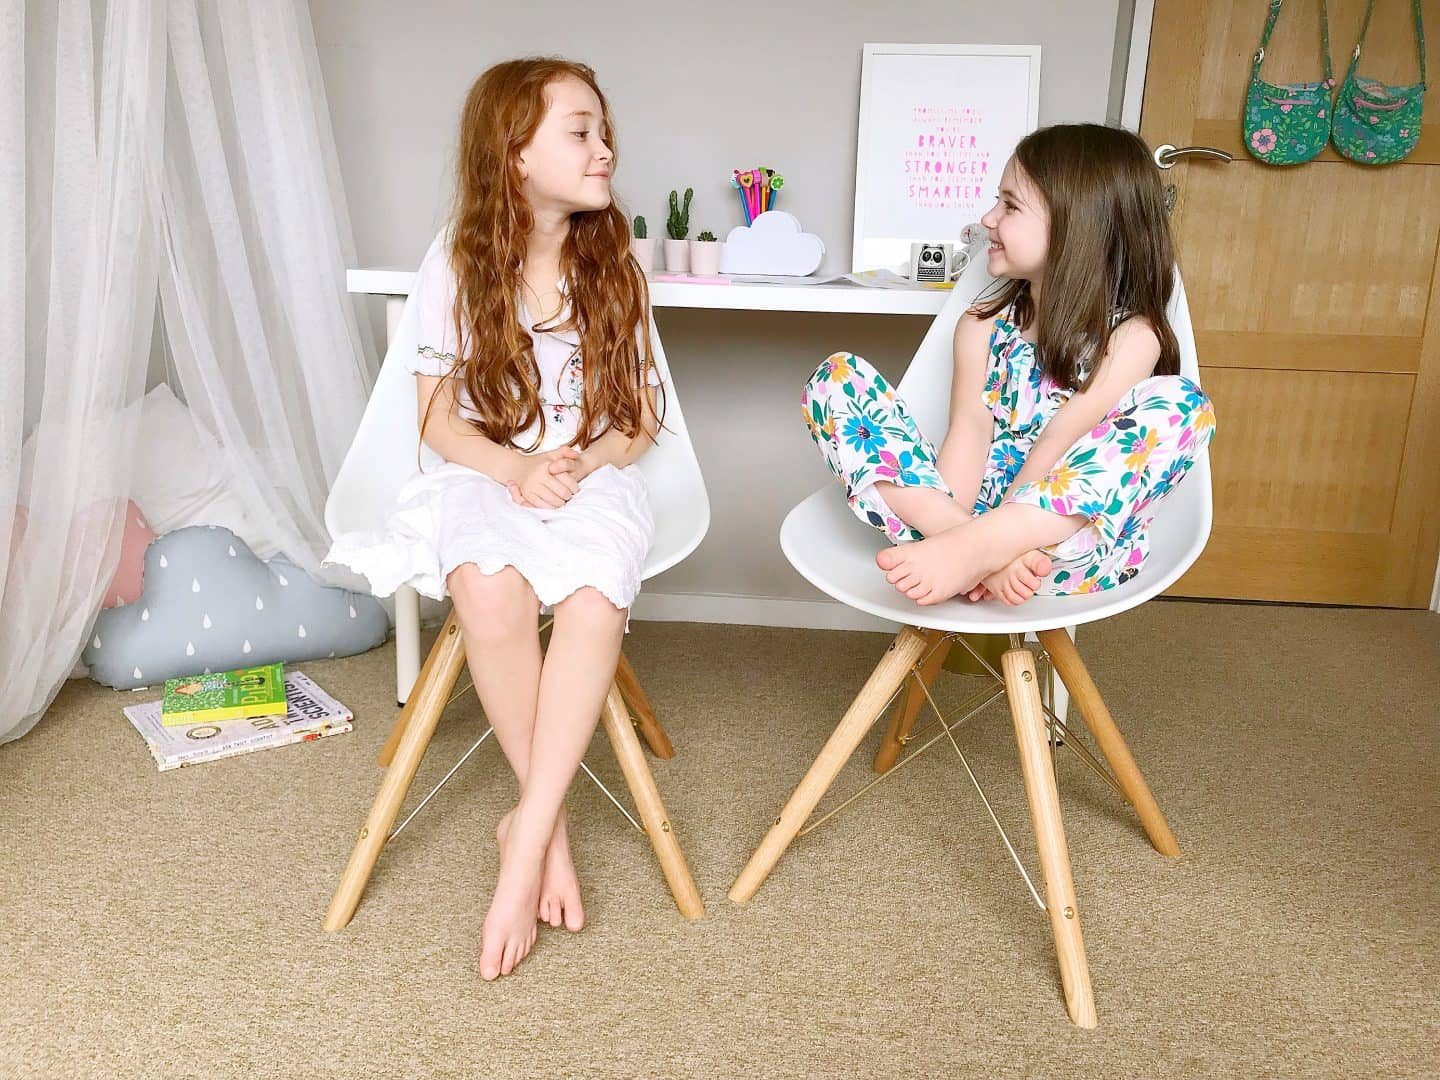 Cult Furniture Moda Dining Chairs with a white desk - the perfect chairs for kids to grow in to